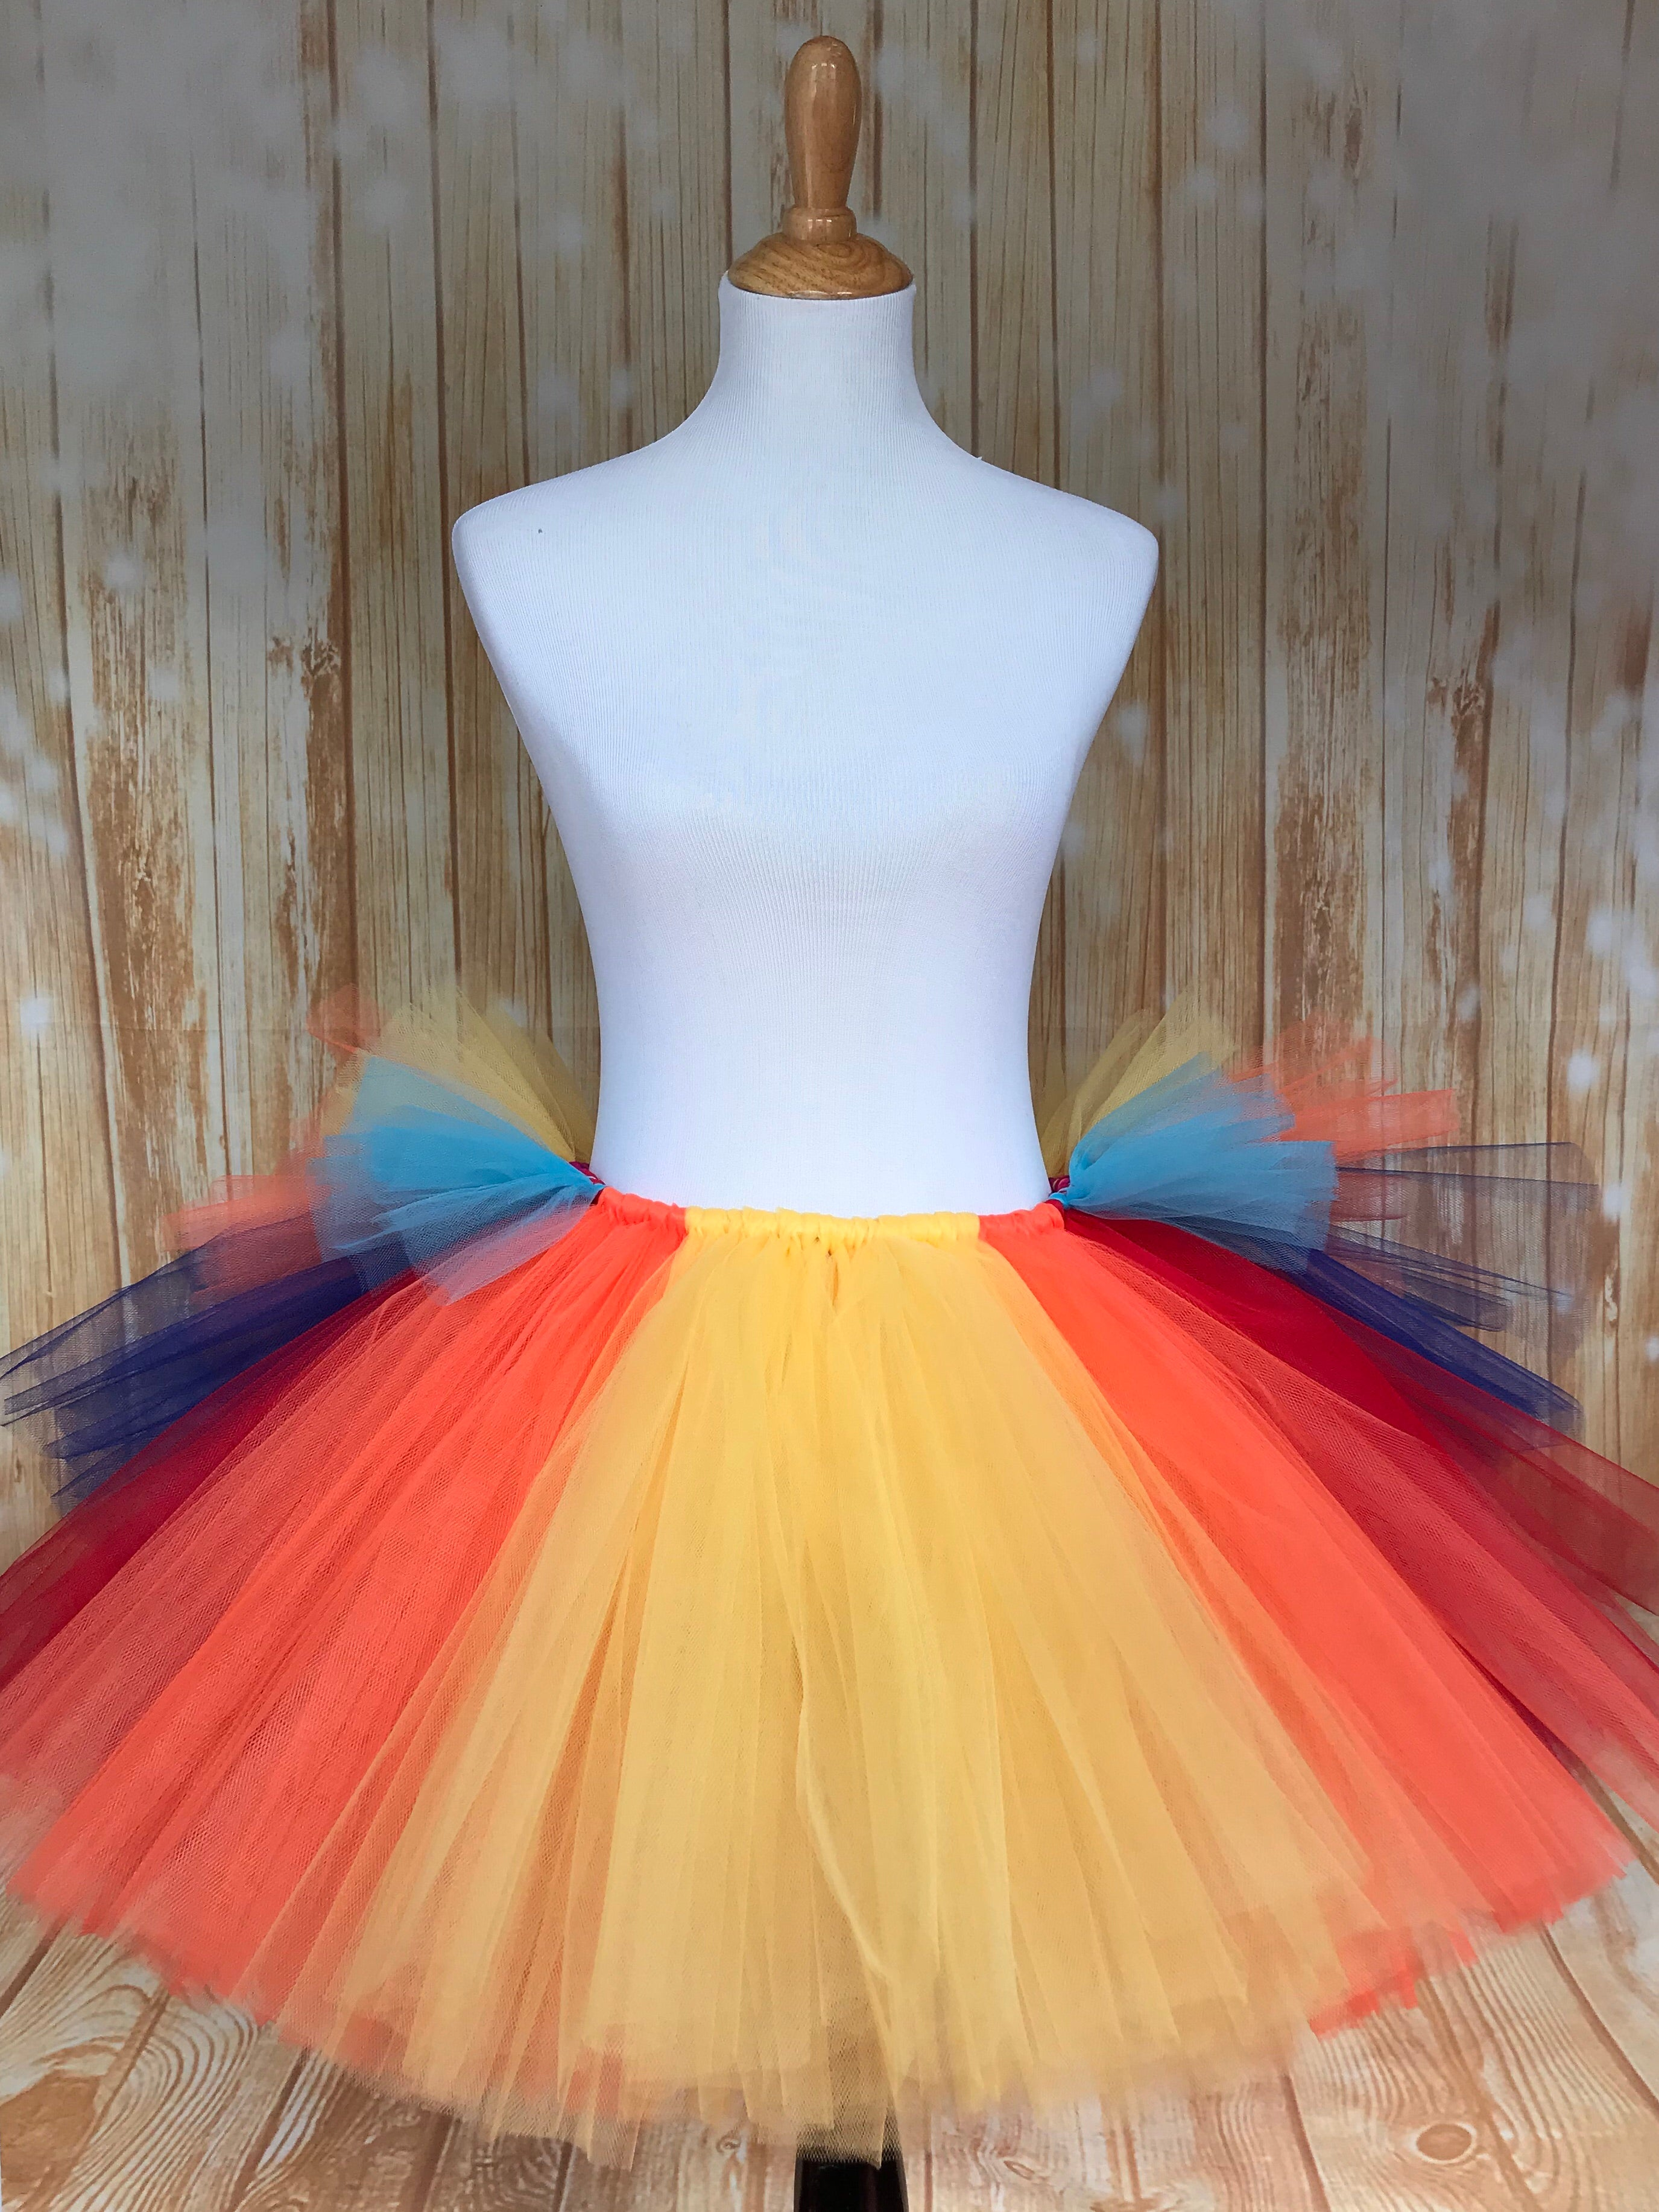 fdf2eb7c2 Kevin Up Women's Disney Marathon Tutu Skirt | Little Ladybug Tutus